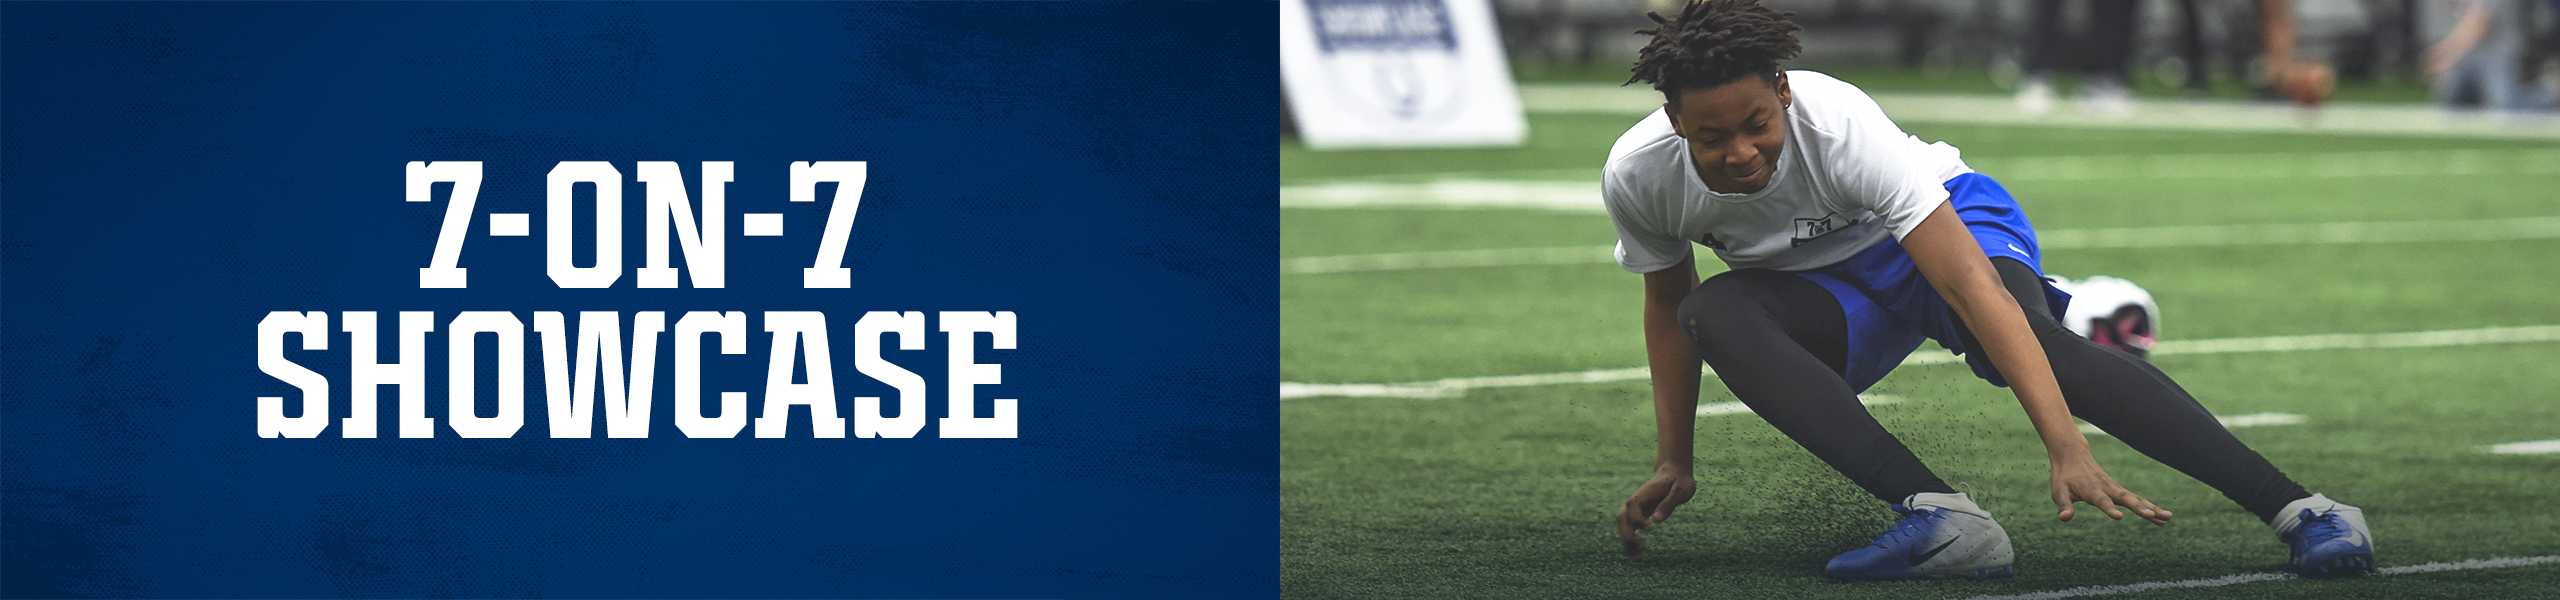 Indianapolis Colts 7-on-7 Showcase